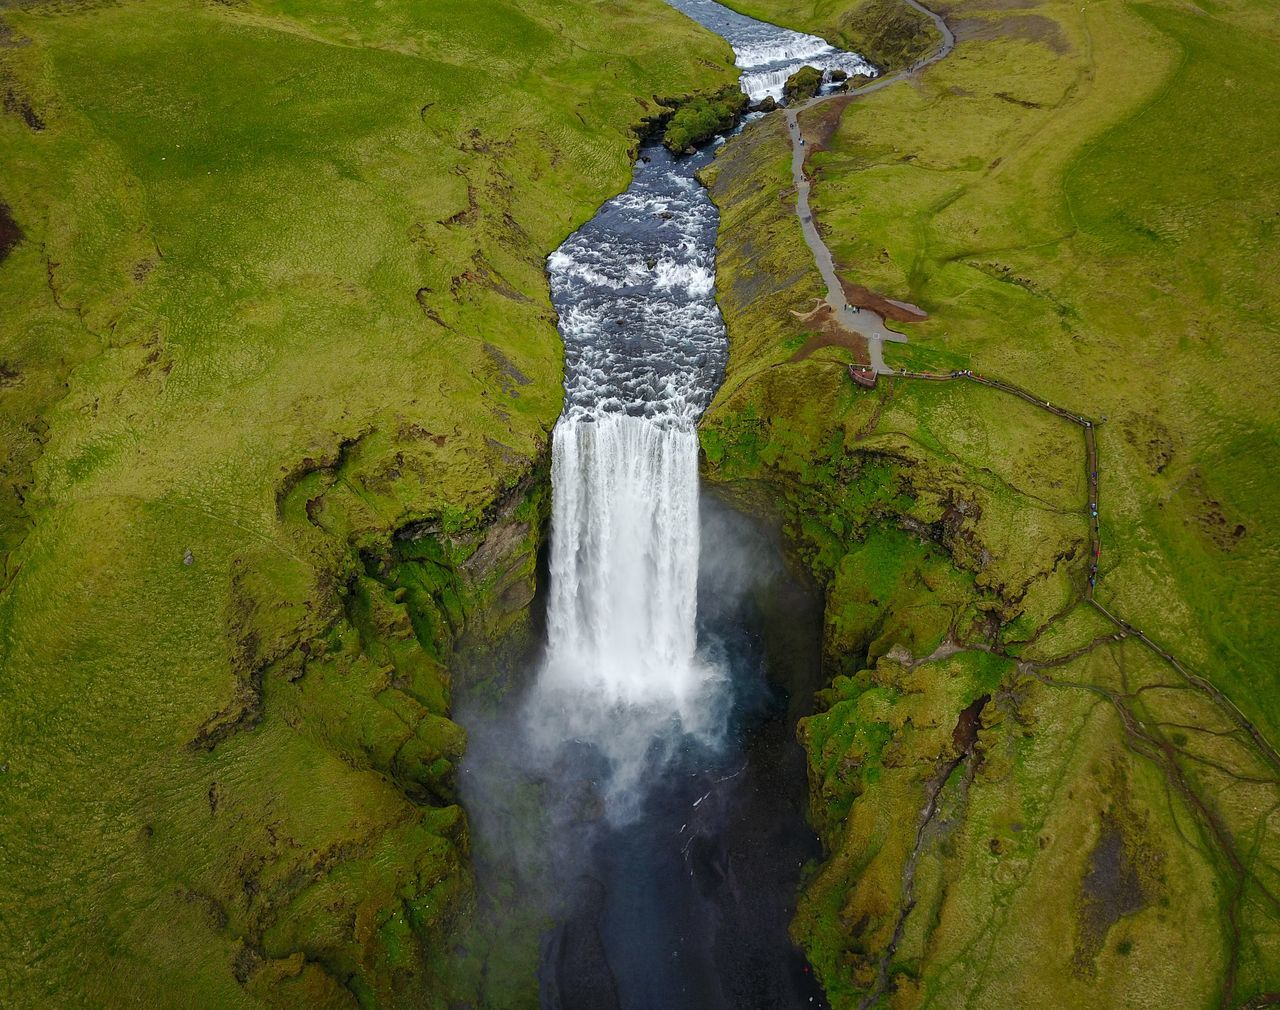 Skogafoss, Iceland skogafoss Nature outdoors beauty in Nature scenics waterfall Iceland high angle view Nature photography landscapes Nature collection Landscape_Collection EyeEm Nature Lover Traveling Travel power in nature Travel Photography EyeEm gallery eye4photography beauty in Nature landscape dronephotography droneshot DJI mavic pro Drone shot Lost in the Landscape Fresh on Market 2017